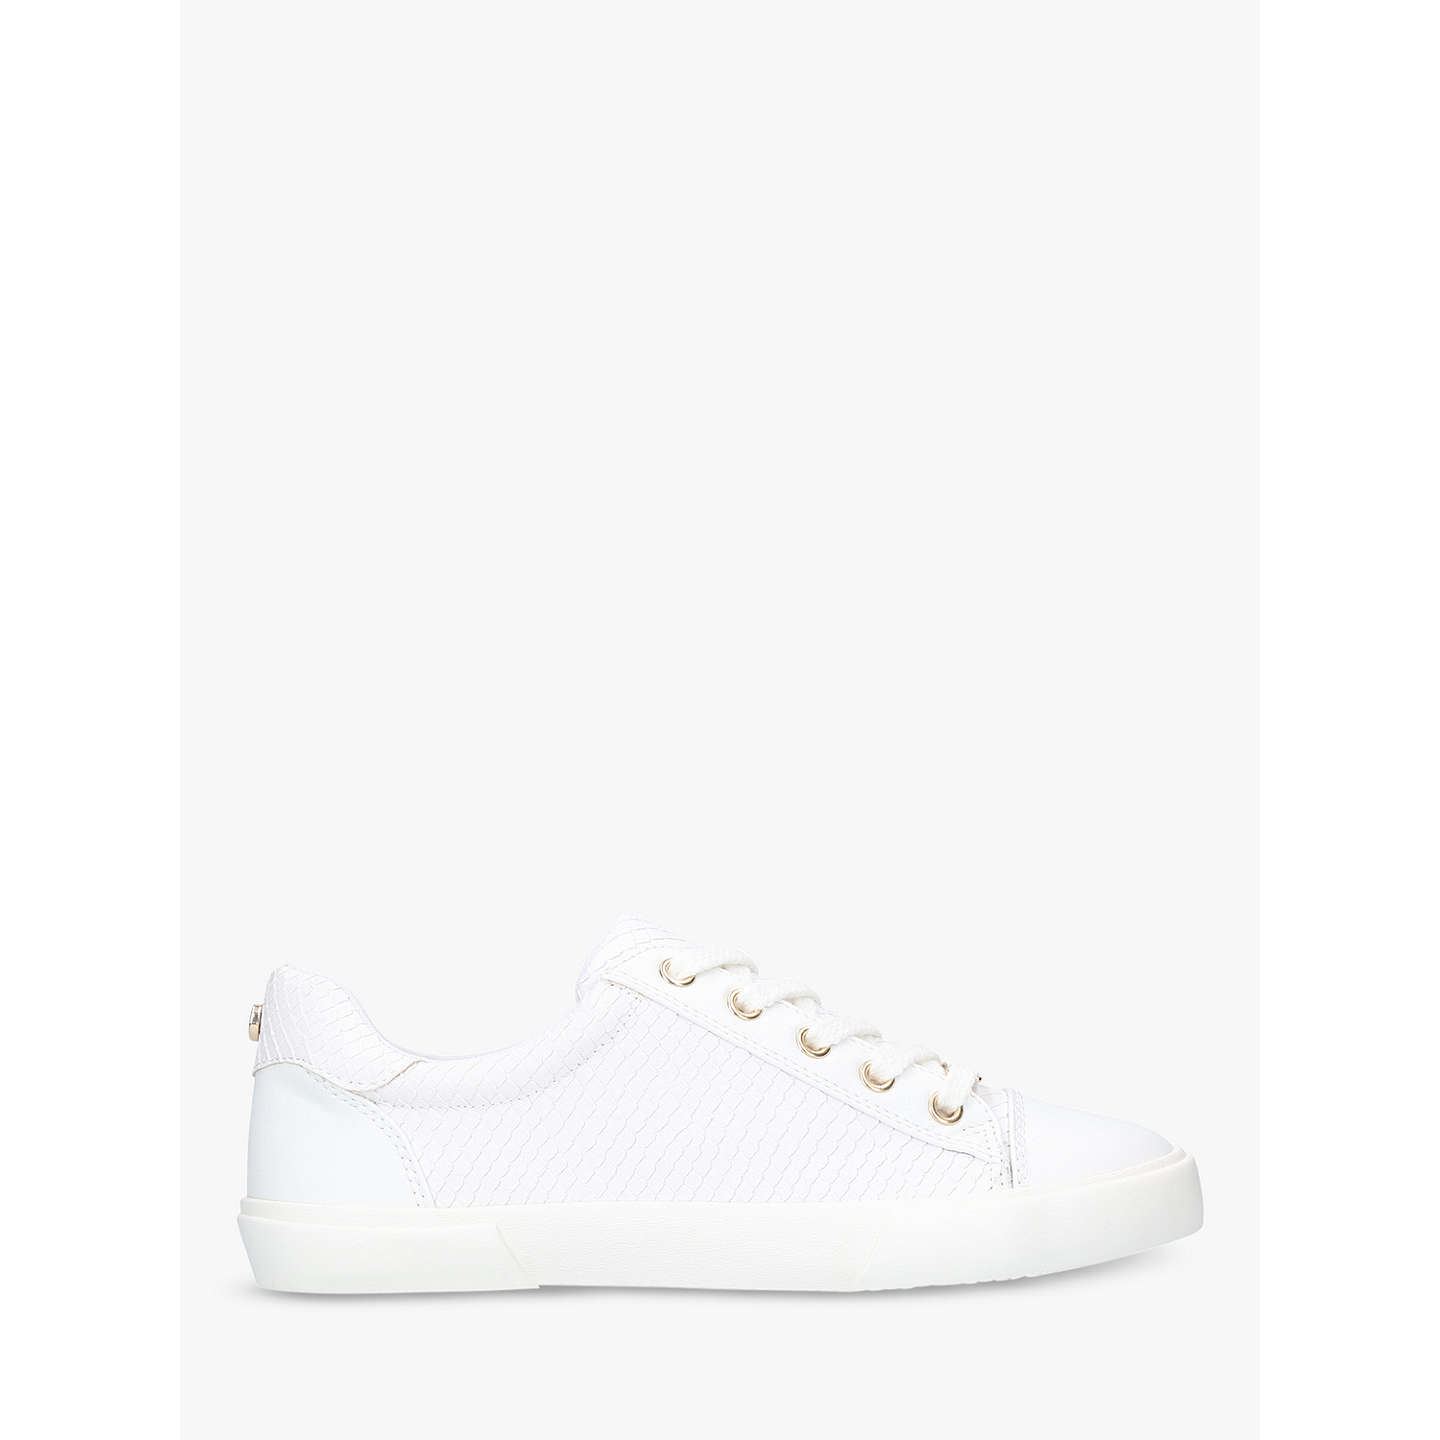 Carvela Light Lace Up Trainers, White, White by Carvela